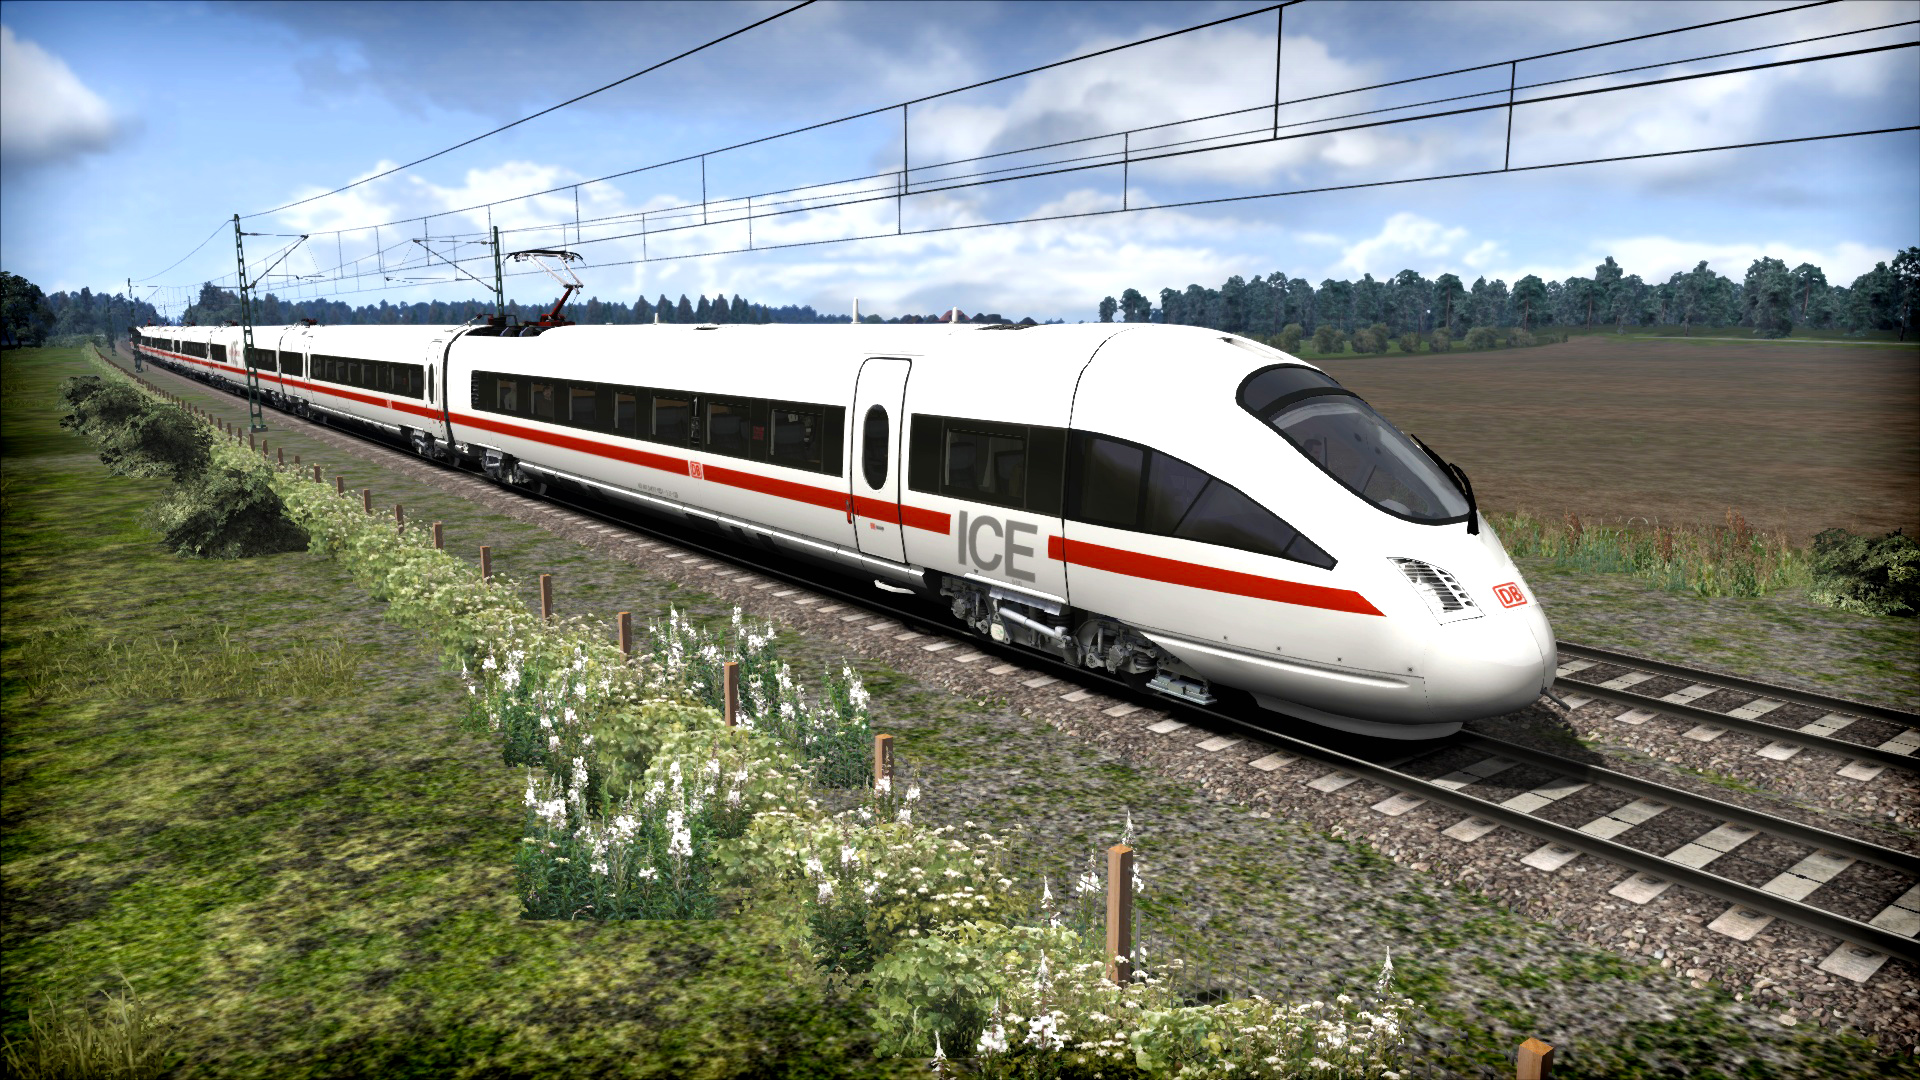 Train Simulator: DB BR 411 'ICE-T' EMU Add-On screenshot